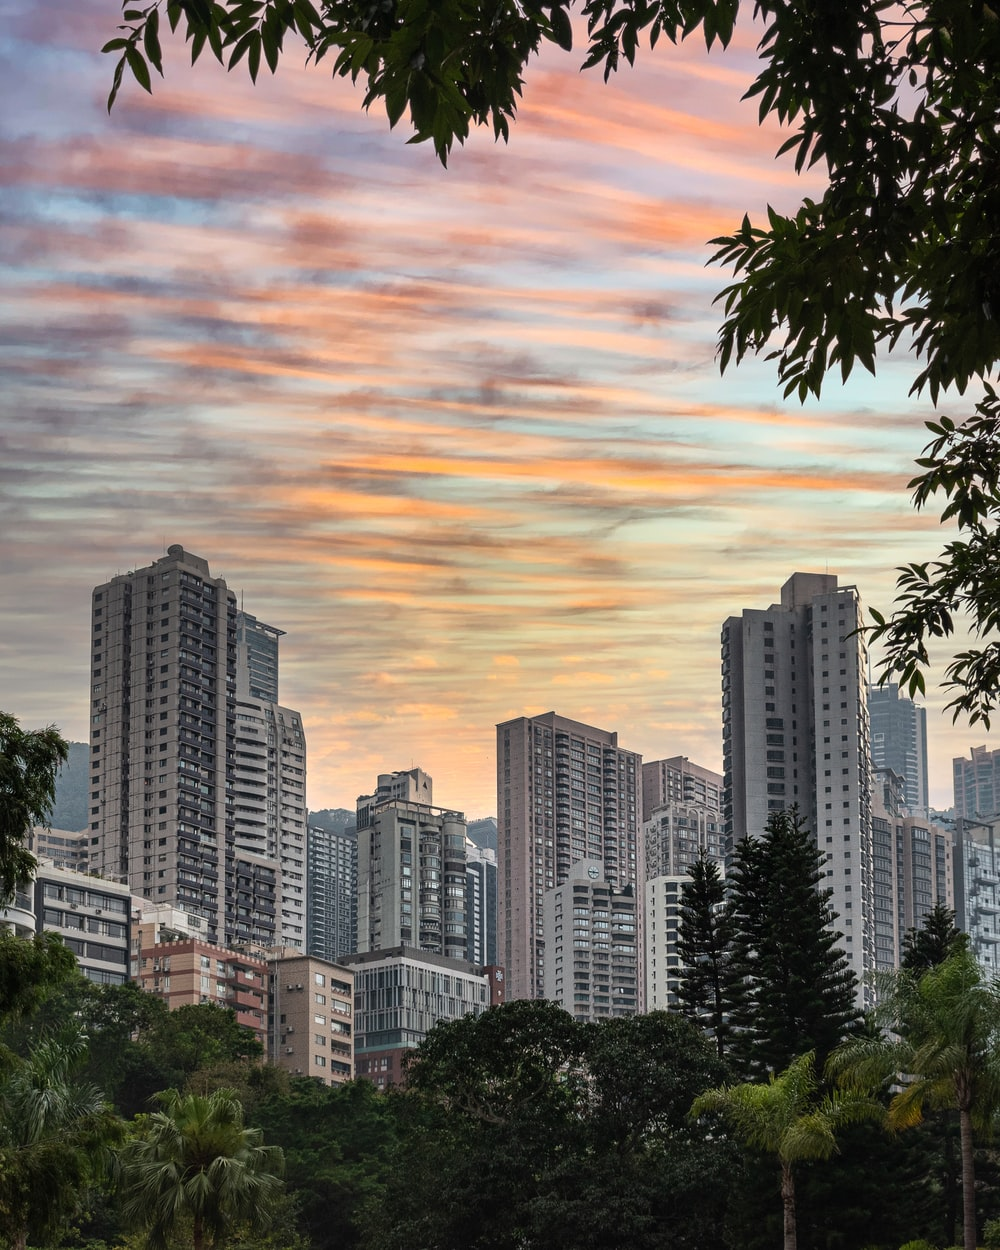 high rise buildings near green trees under cloudy sky during daytime